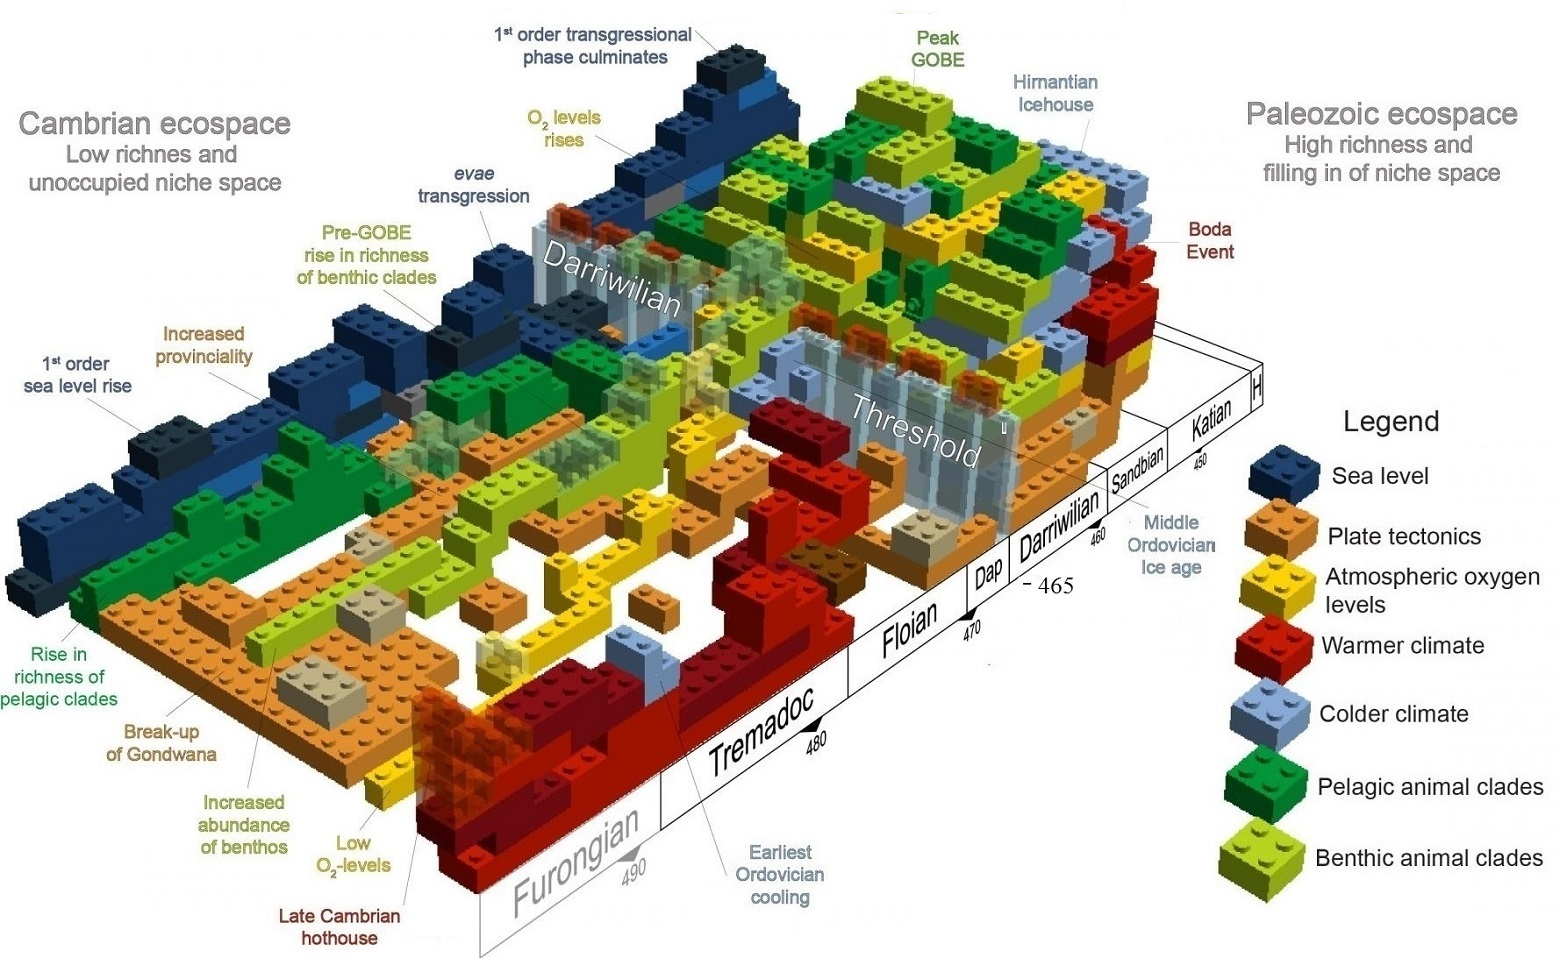 post-modern global fitness landscape with Legos